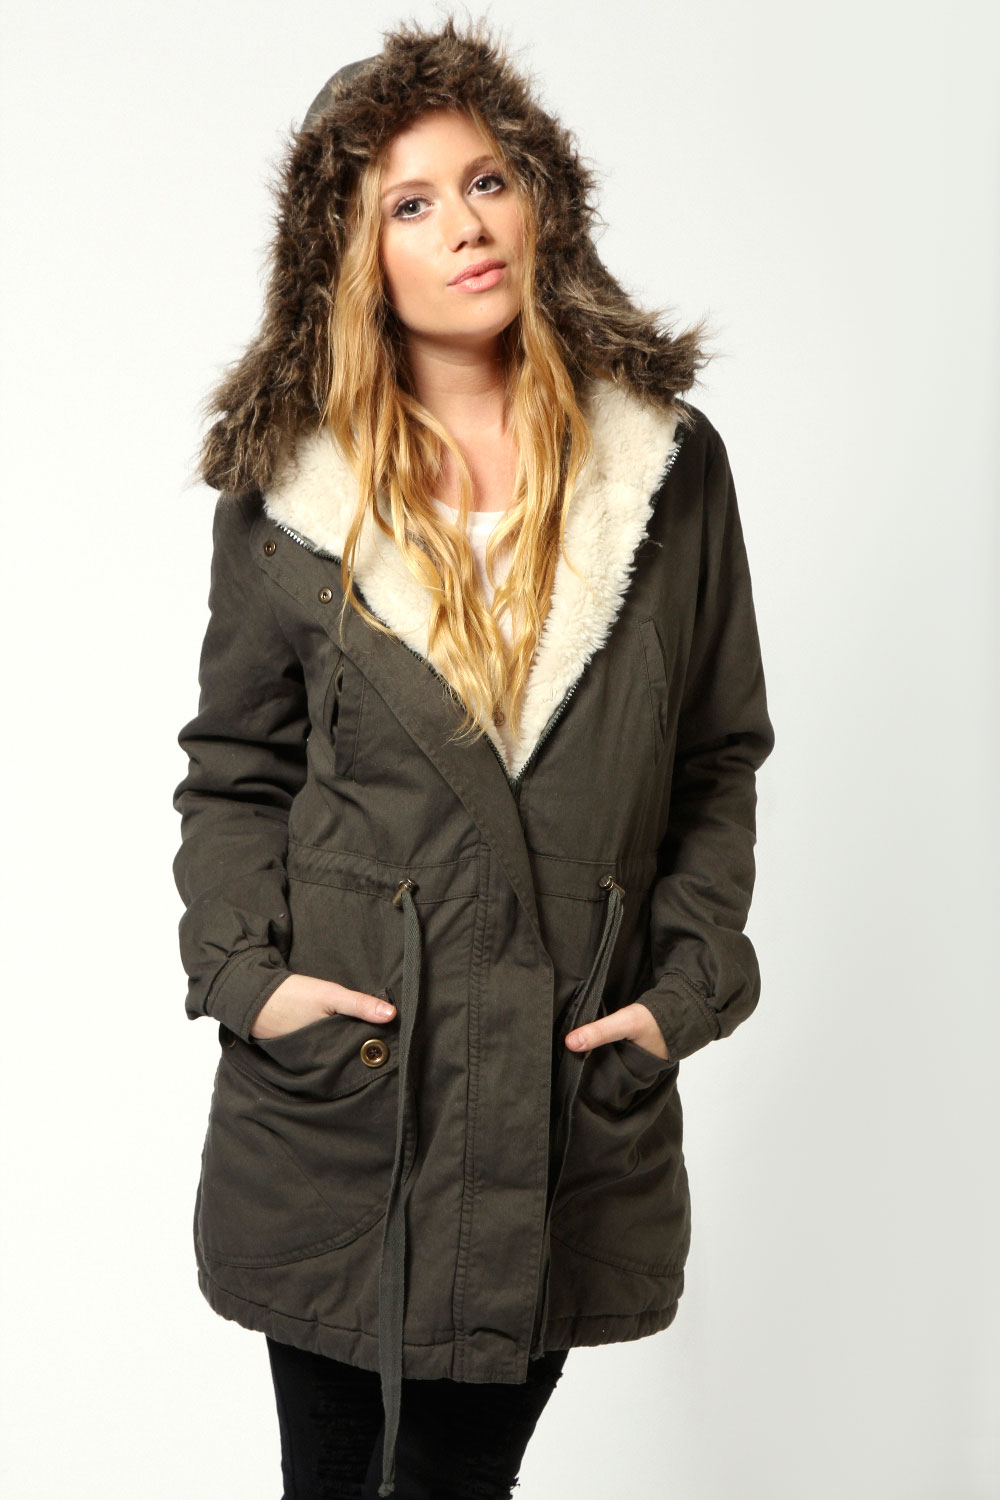 Boohoo Womens Ladies Emily Parka With Fur Hood Jacket | EBay